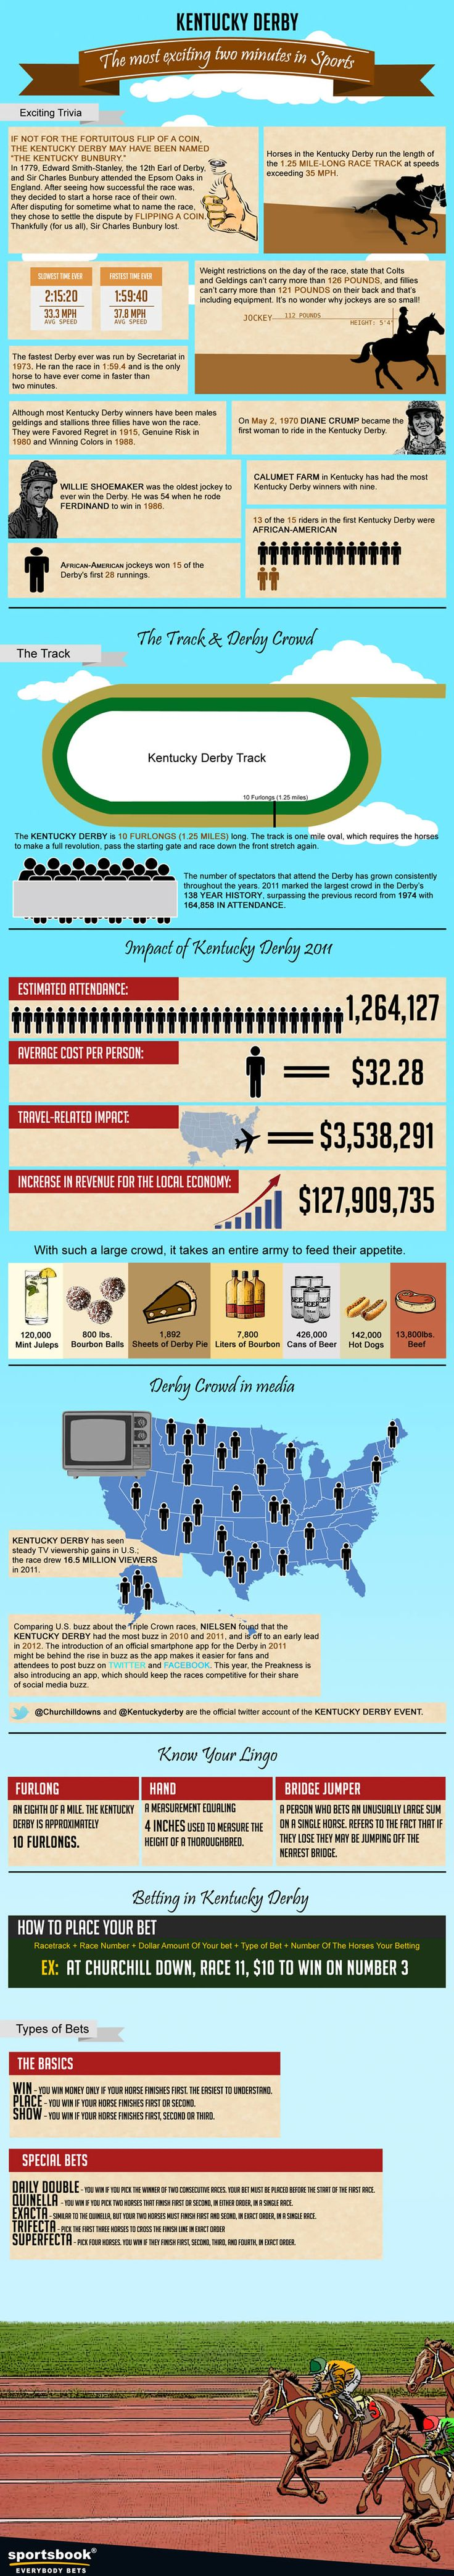 Enjoy this great Kentucky derby infographics brought to you by Sportsbook.ag Bet Kentucky Derby at Sportsbook.ag today! We've got huge cash prizes and bonuses for all bettors. Plus find the most up-to-date Kentucky Derby betting odds, information and tips from experts.Kentucky derby betting had never been this great! Bet now at Sportsbook.ag  Source: www.sportsbook.ag...